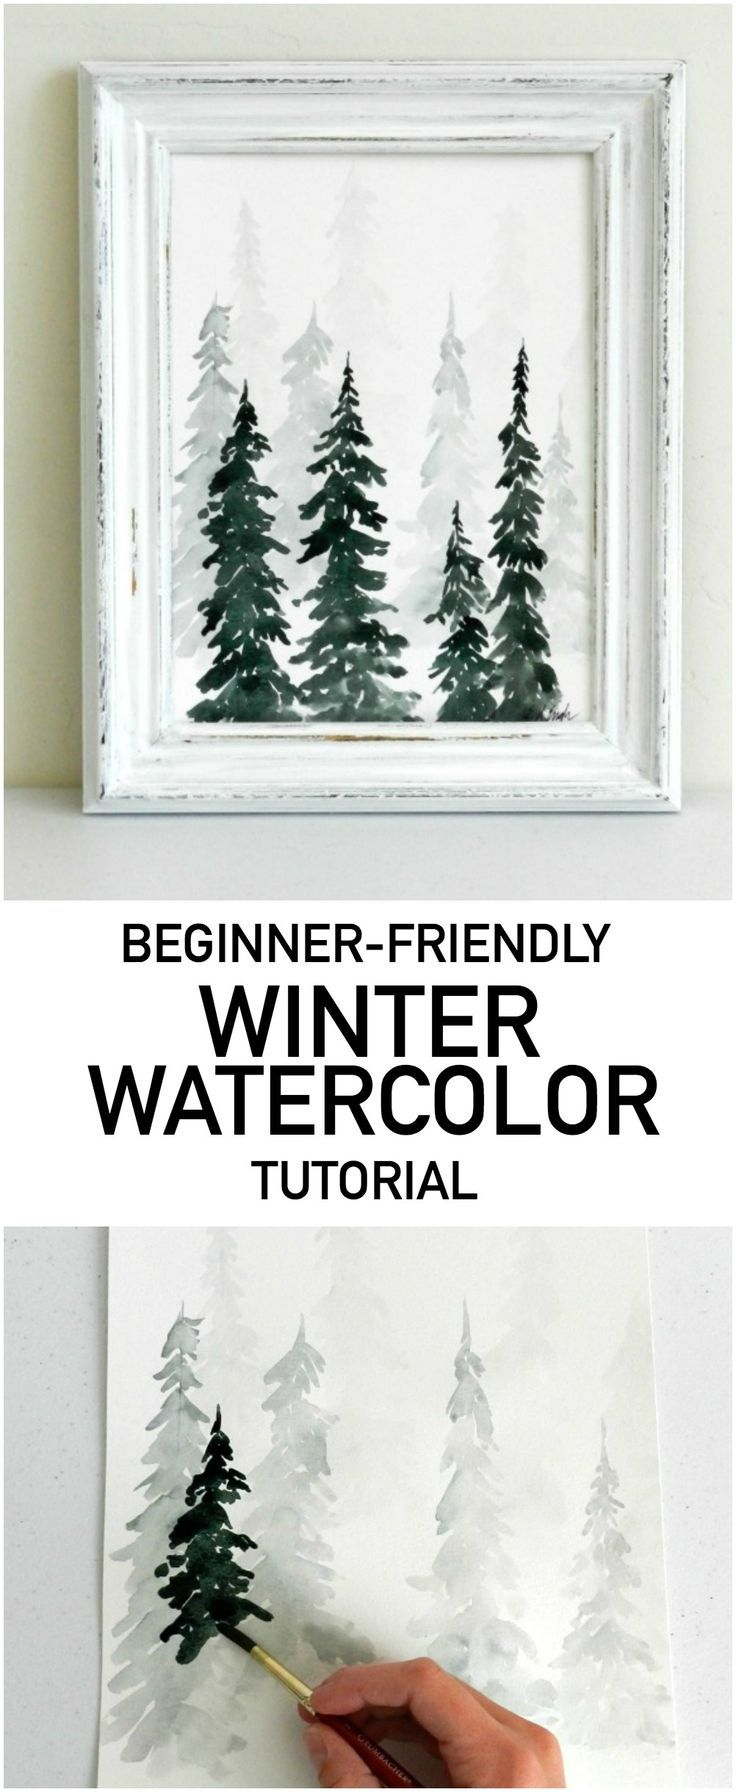 Watercolor Pine Trees Tutorial: How to Paint a Wintery Forestscape ...